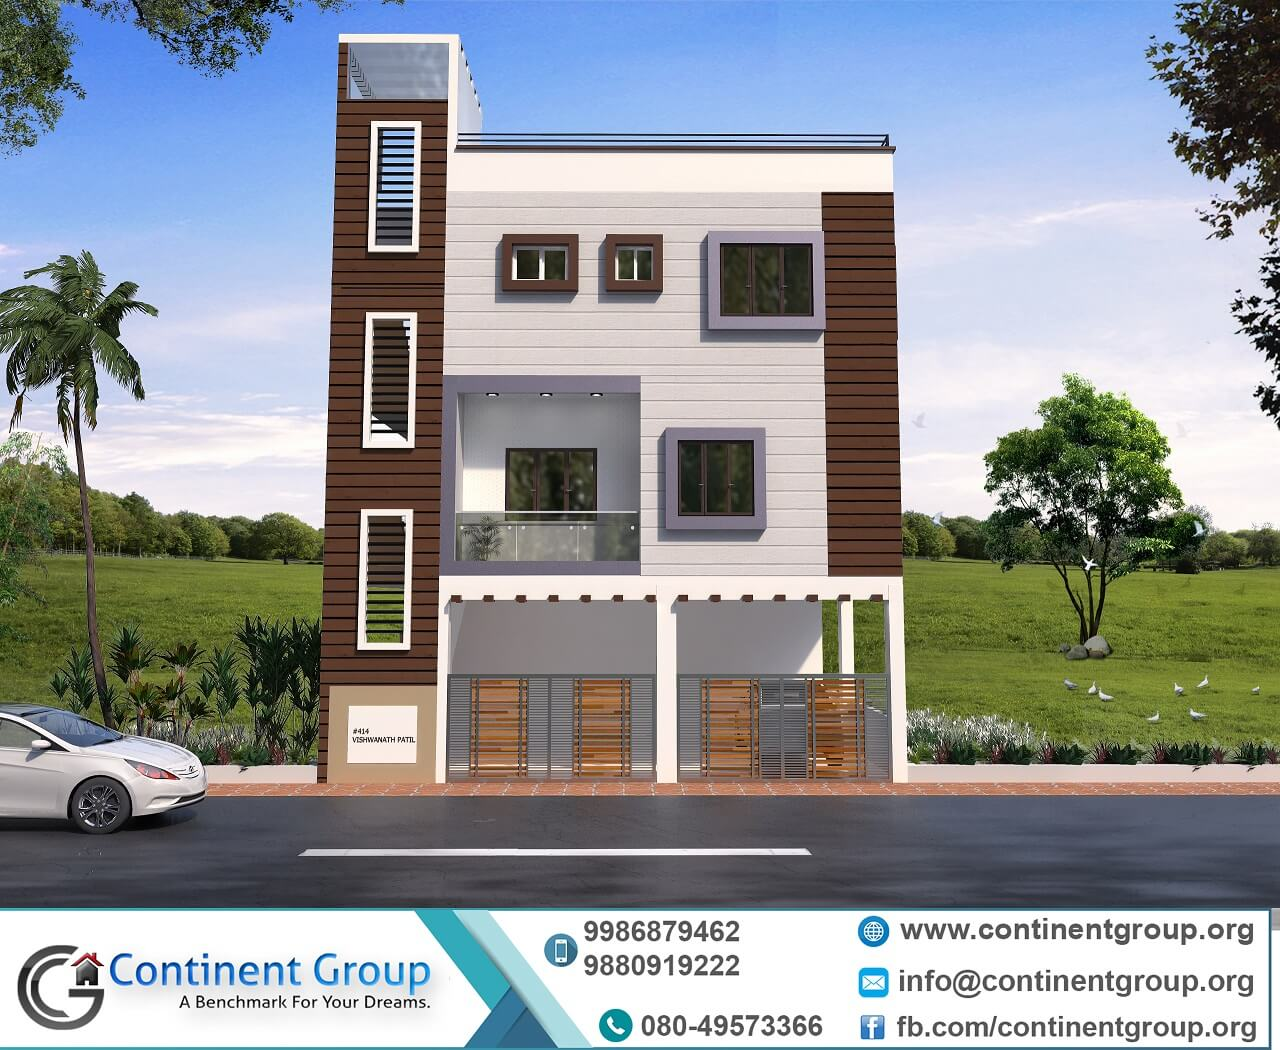 Lovely Building Elevation Design Part - 13: 3d Front Elevation Design Cladding Simlpe Elegant Design-3d Building  Elevation